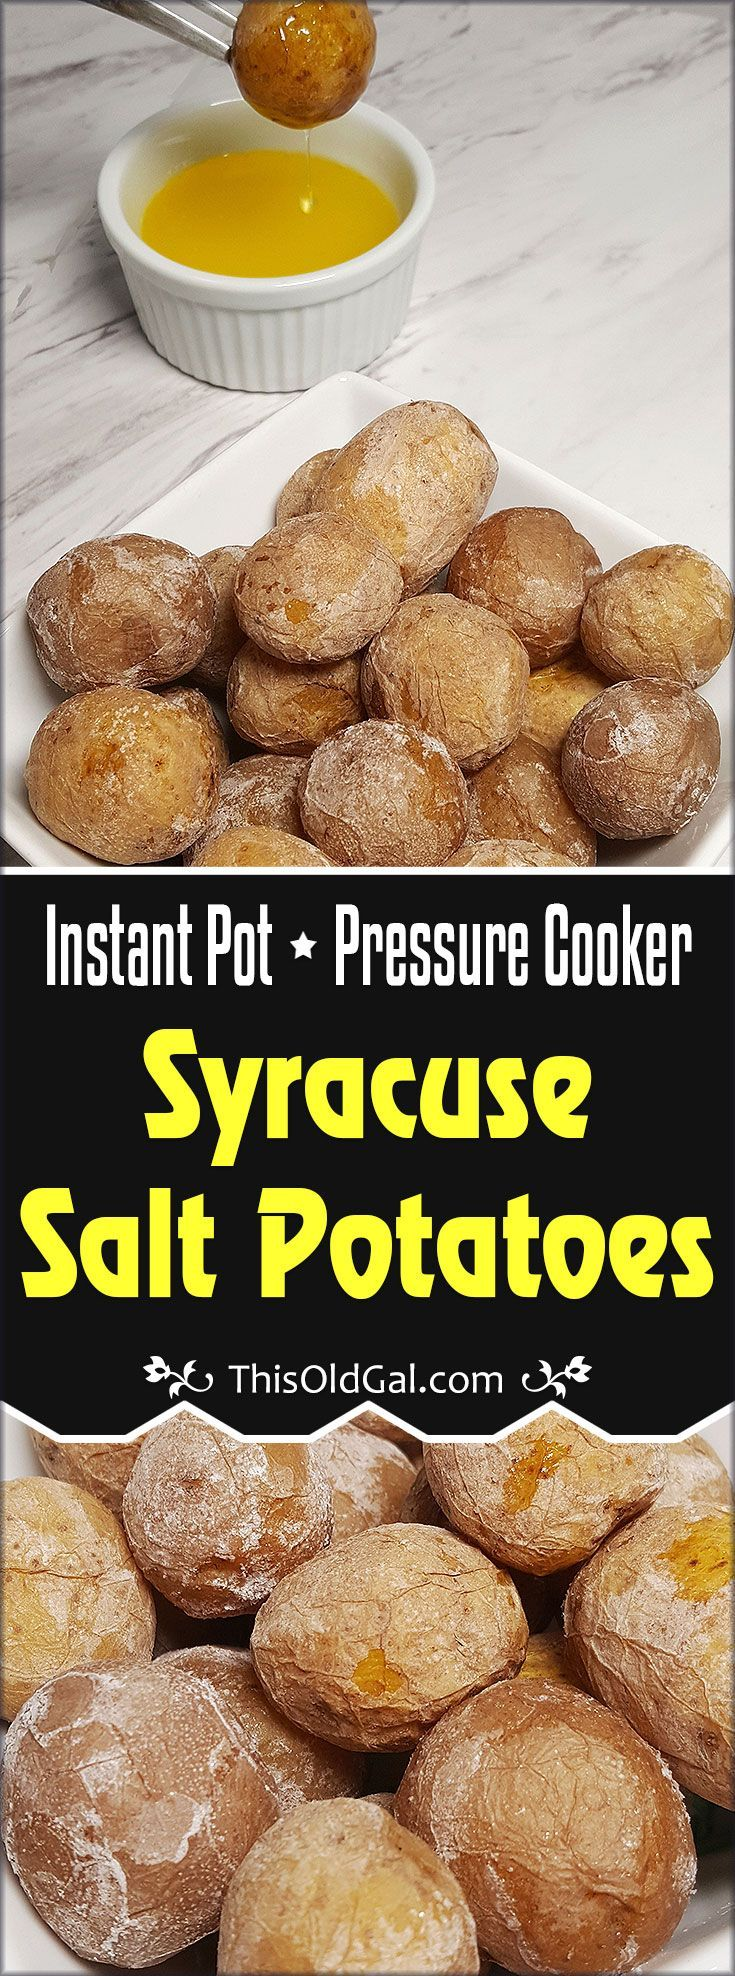 Pressure Cooker Syracuse Salt Potatoes, created by Irish Salt Miners, are made with new potatoes, that are boiled in brine, yielding a creamy interior. via @thisoldgalcooks